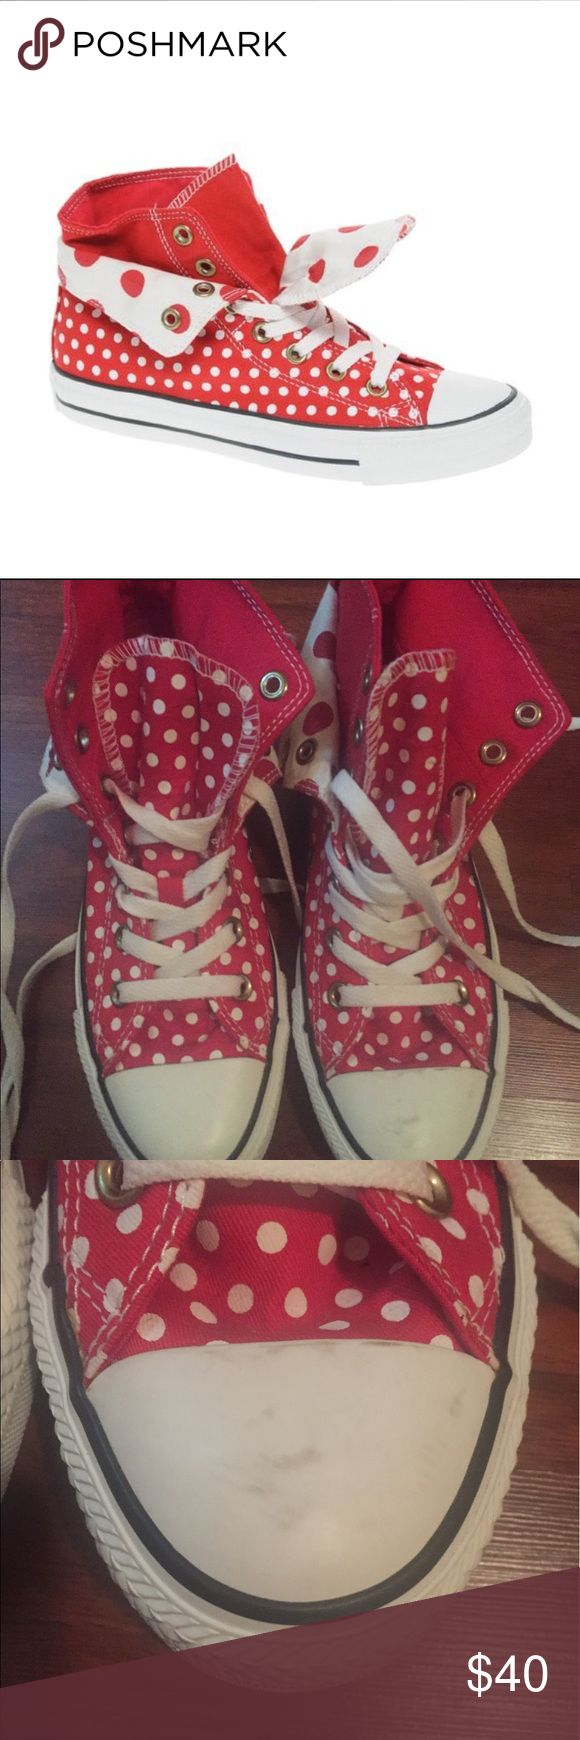 Converse All Star Two Fold High Top Trainers Beautiful red and white polka dot high top converse Shoe is new without box. Has never been worn. Some dirt in the front shown on the pic is just from storing the shoe Very cute! Converse Shoes Sneakers